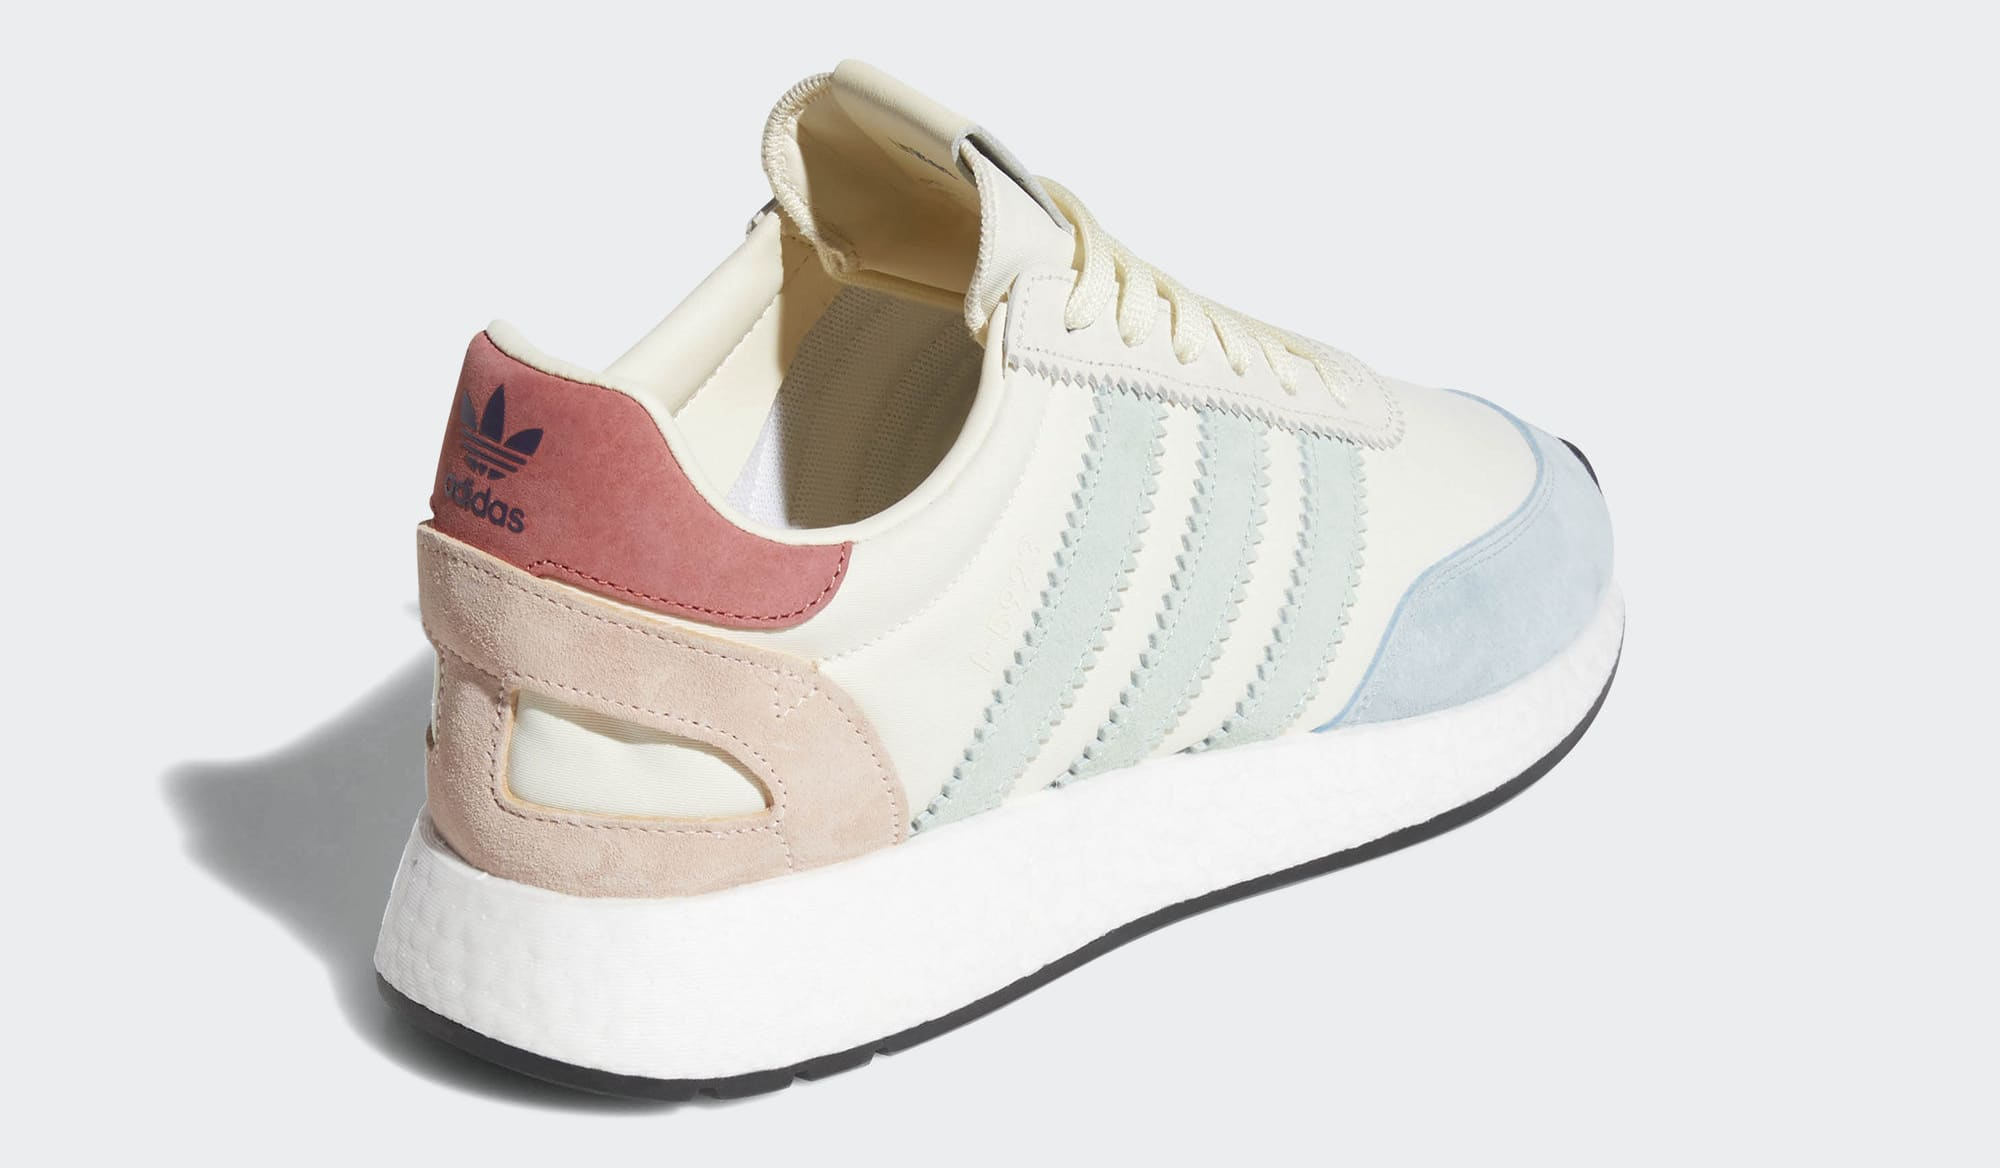 Adidas 2018 LGBT Pride Pack Release Date   Sole Collector